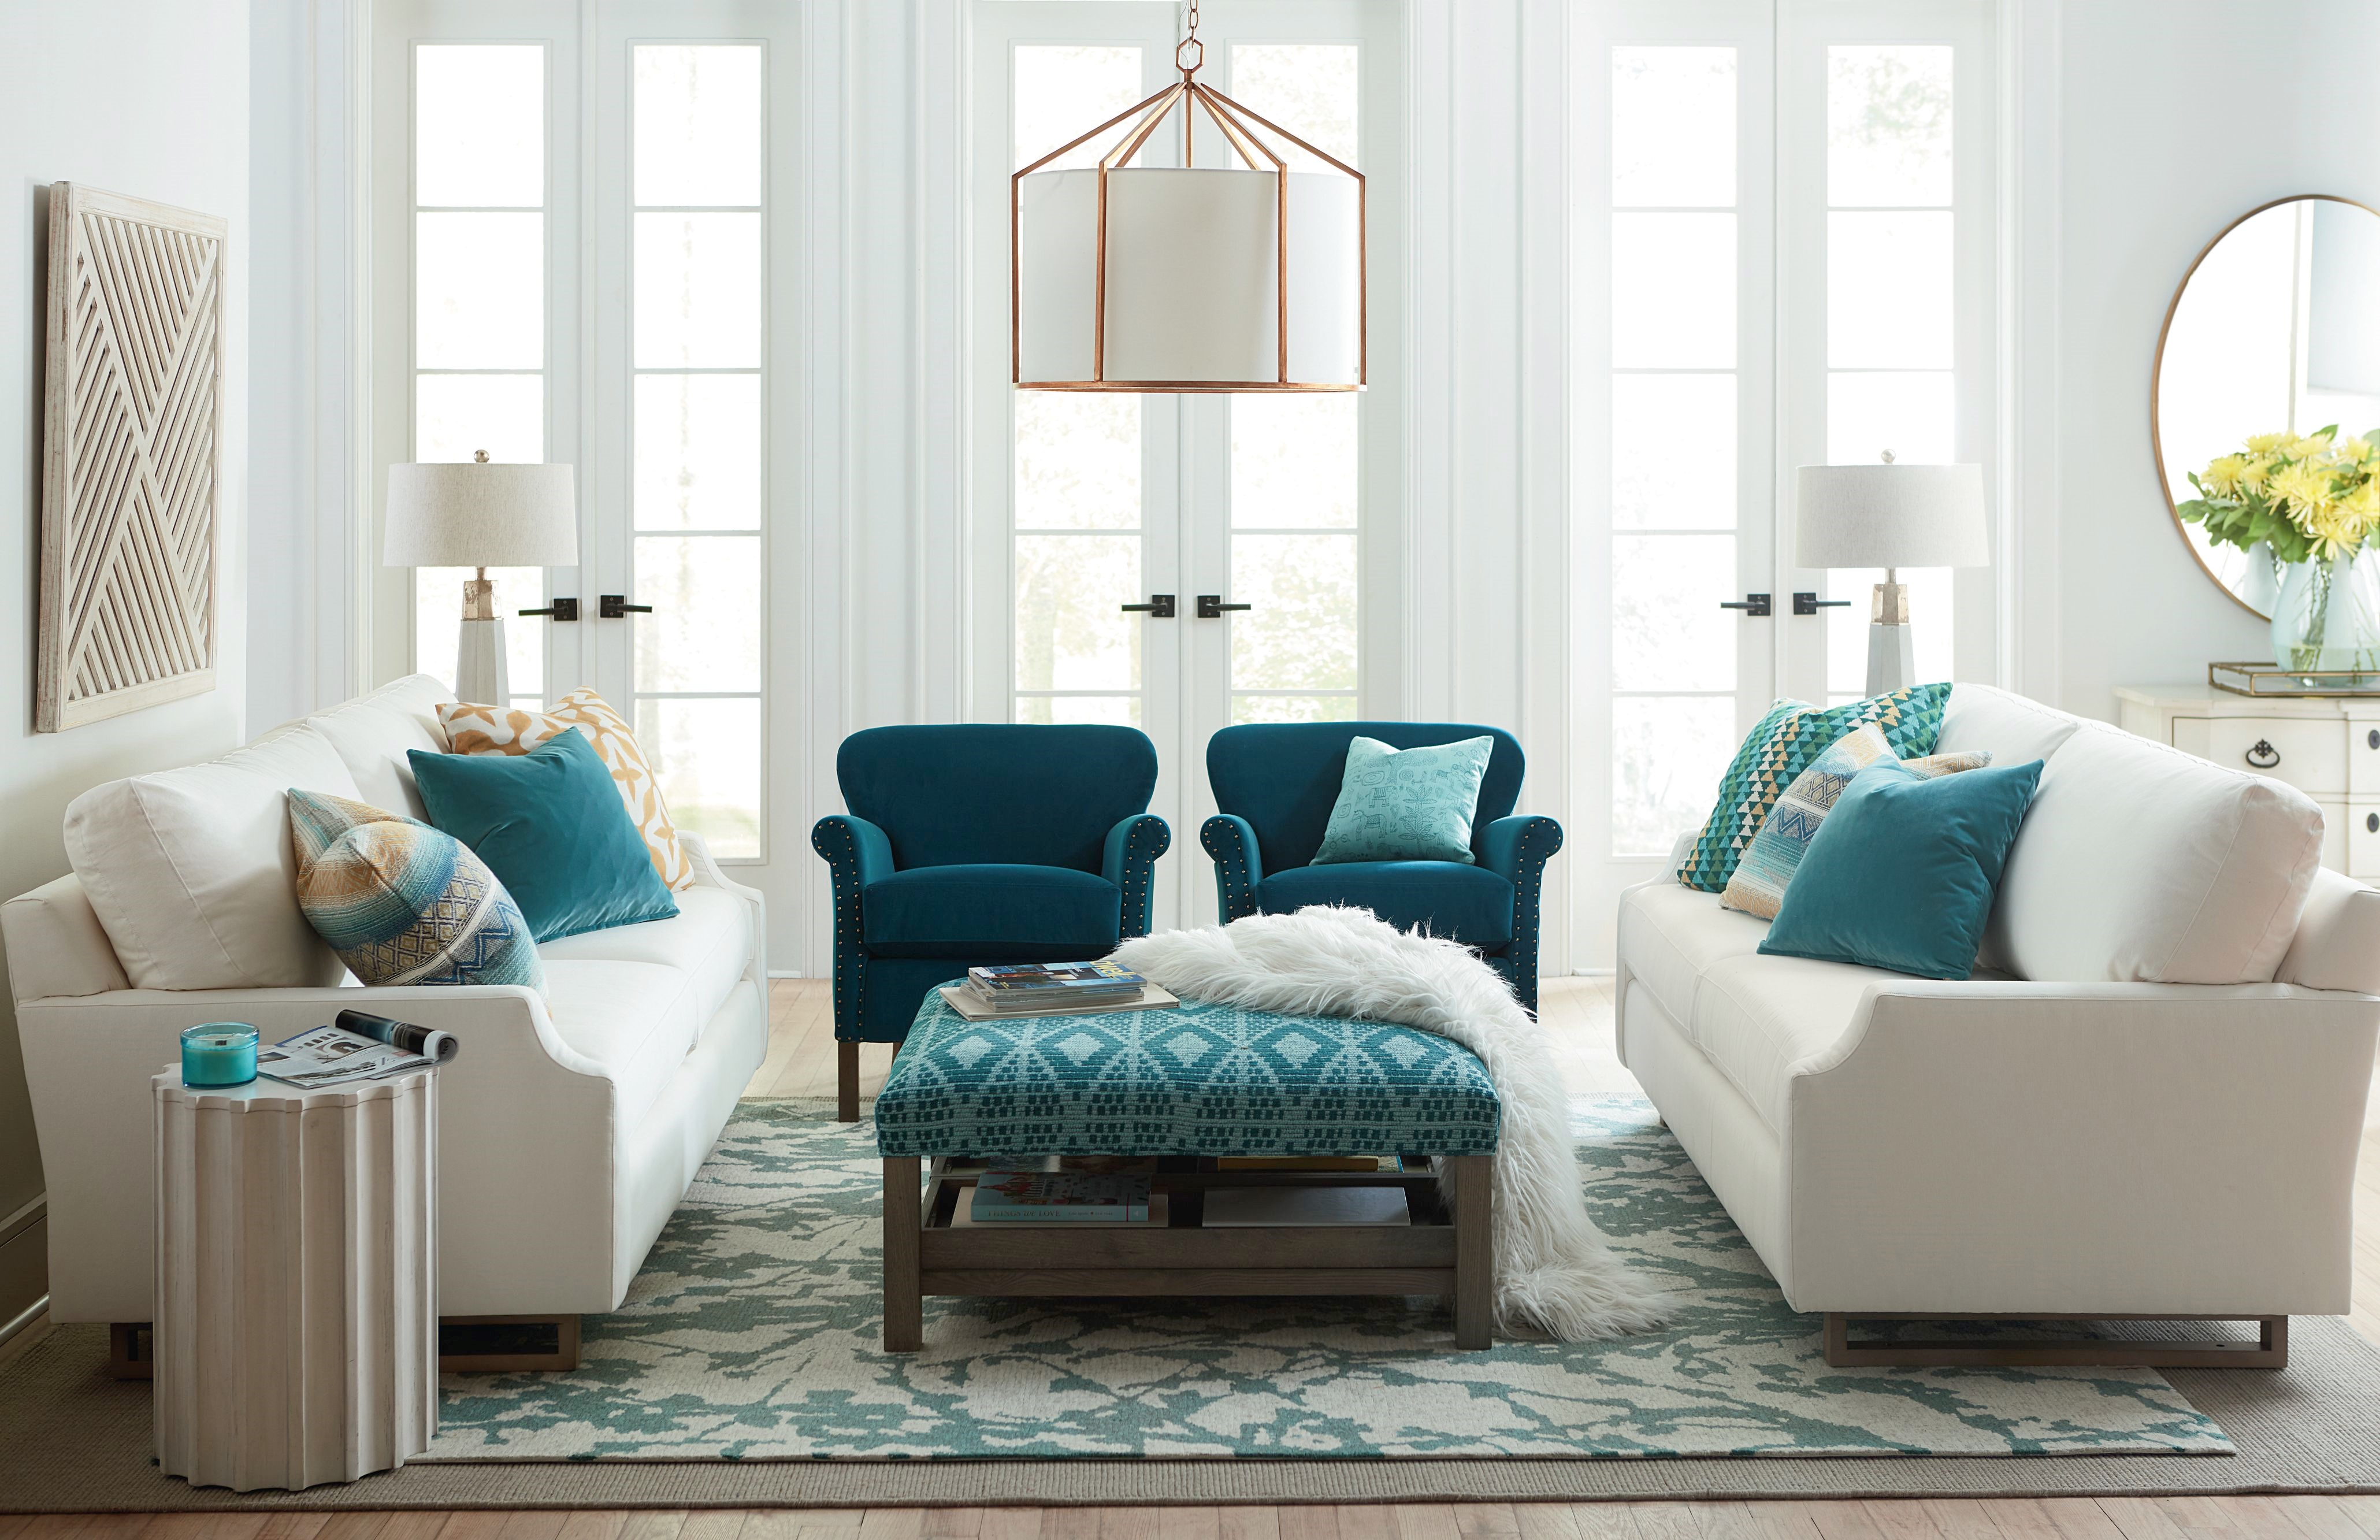 HGTV HOME™ Design Studio by Bassett